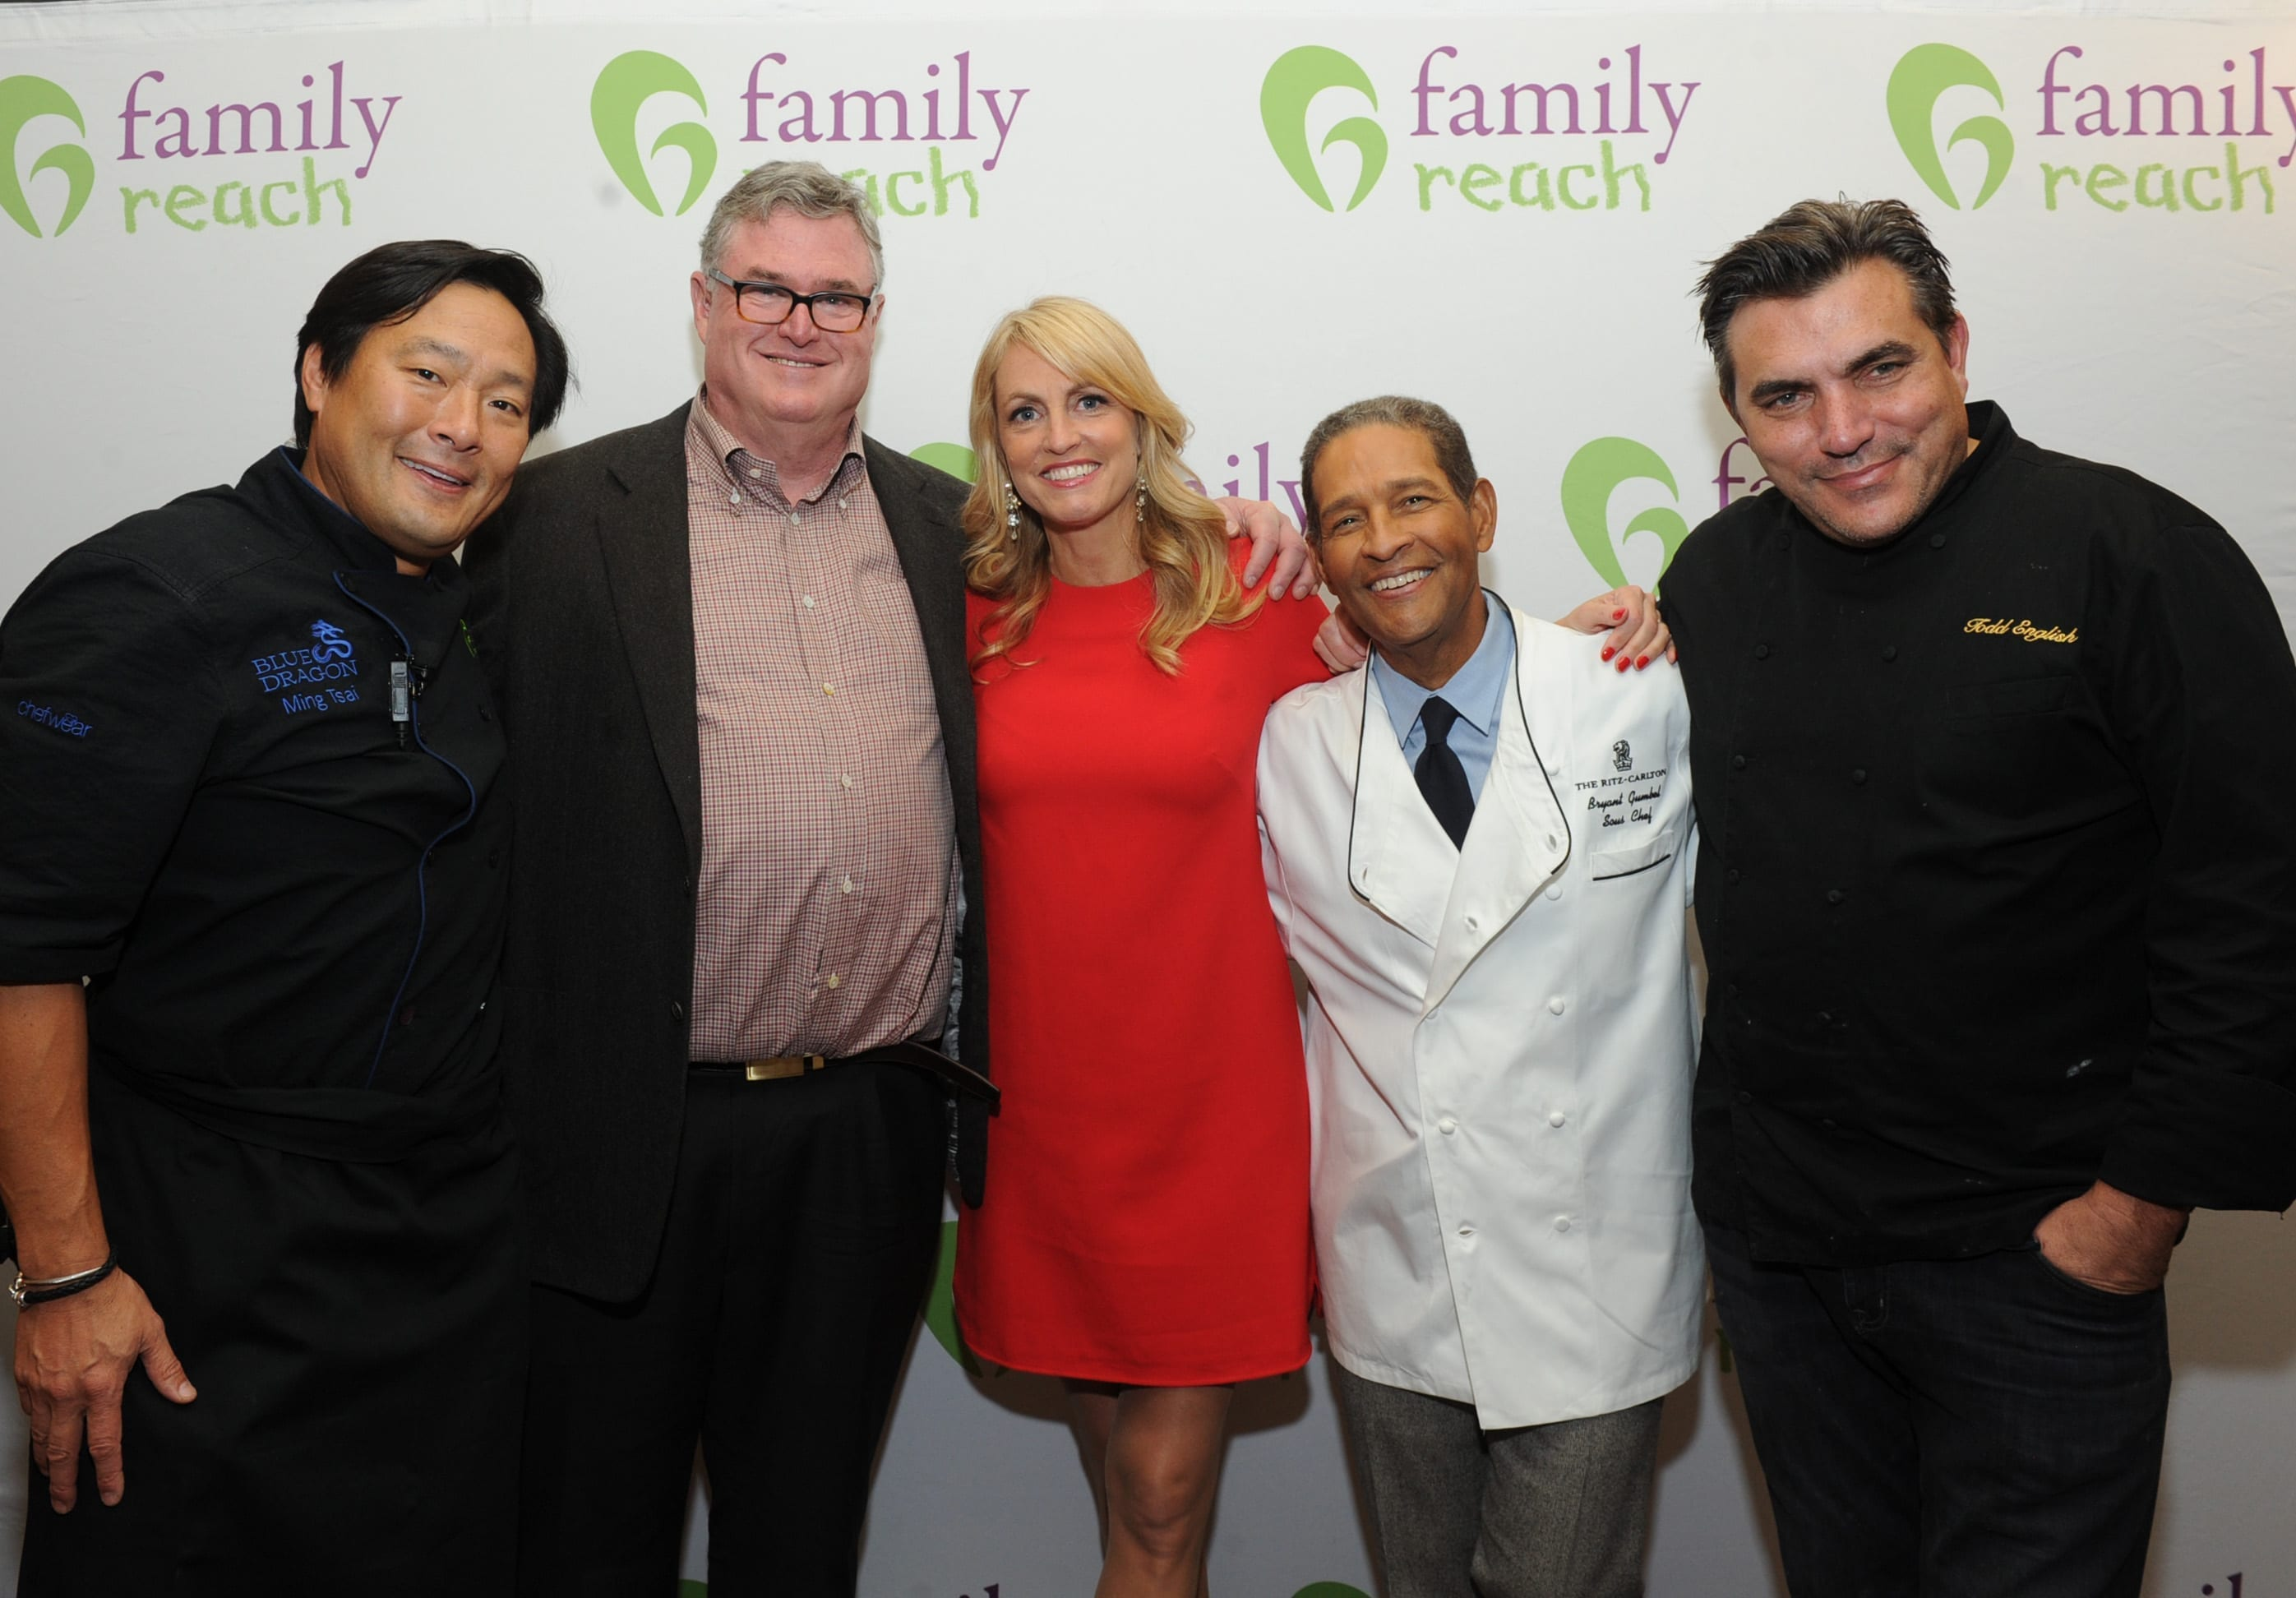 1. Ming Tsai (chef, restaurateur and our National Advisory Board President), Jesse Rogers (XXXX), Carla Tardif (Family Reach CEO), Bryant Gumbel (Emmy-award winning broadcaster) and Todd English (chef and restaurateur) come together through food to experience a one of a kind event.